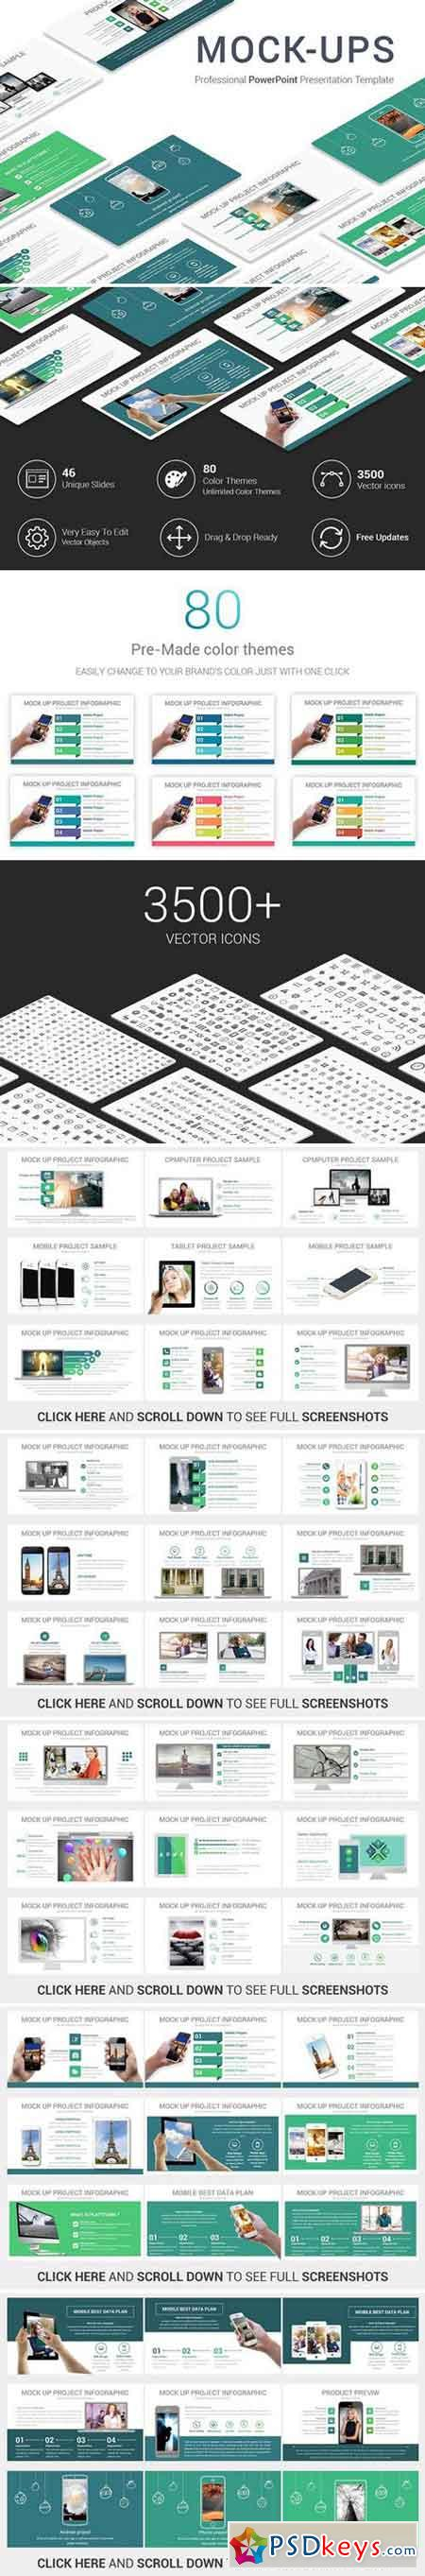 Mock-ups PowerPoint Template 2025185